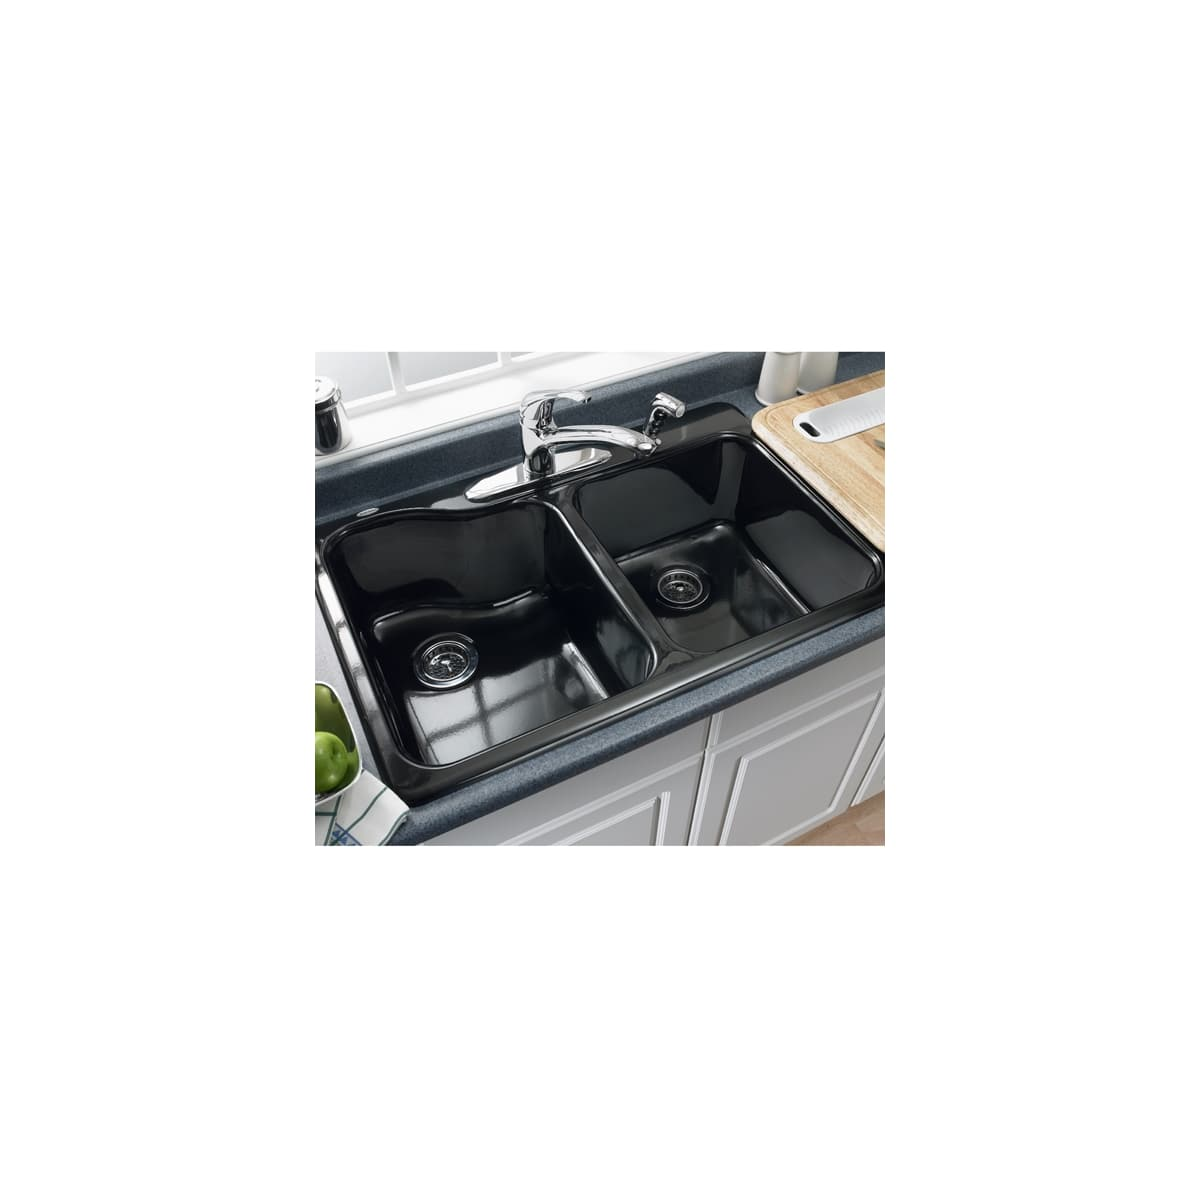 American Standard 7145 001 345 Bisque Double Basin Americast Kitchen